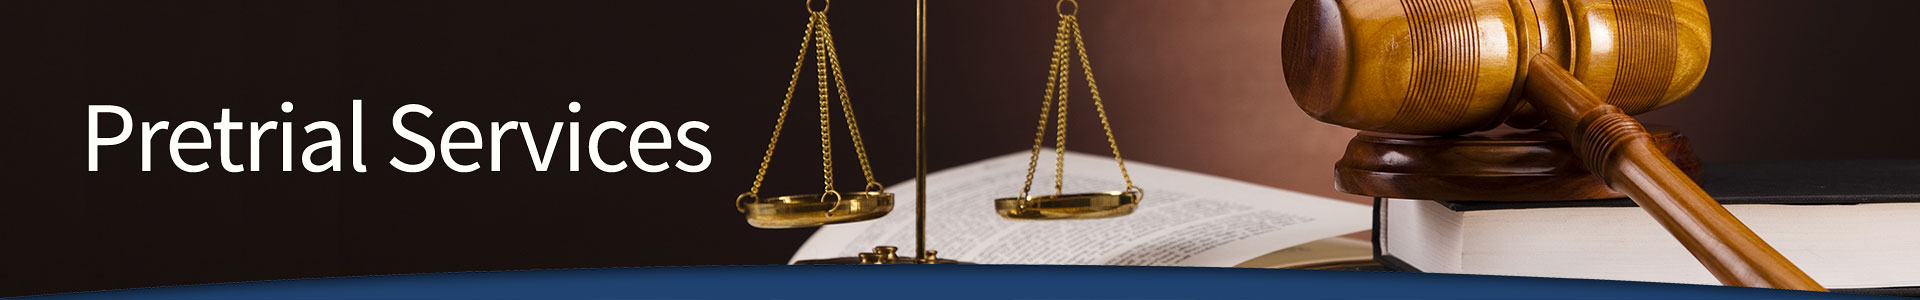 Pretrial Services Department - Gavel, Scales - Click for home